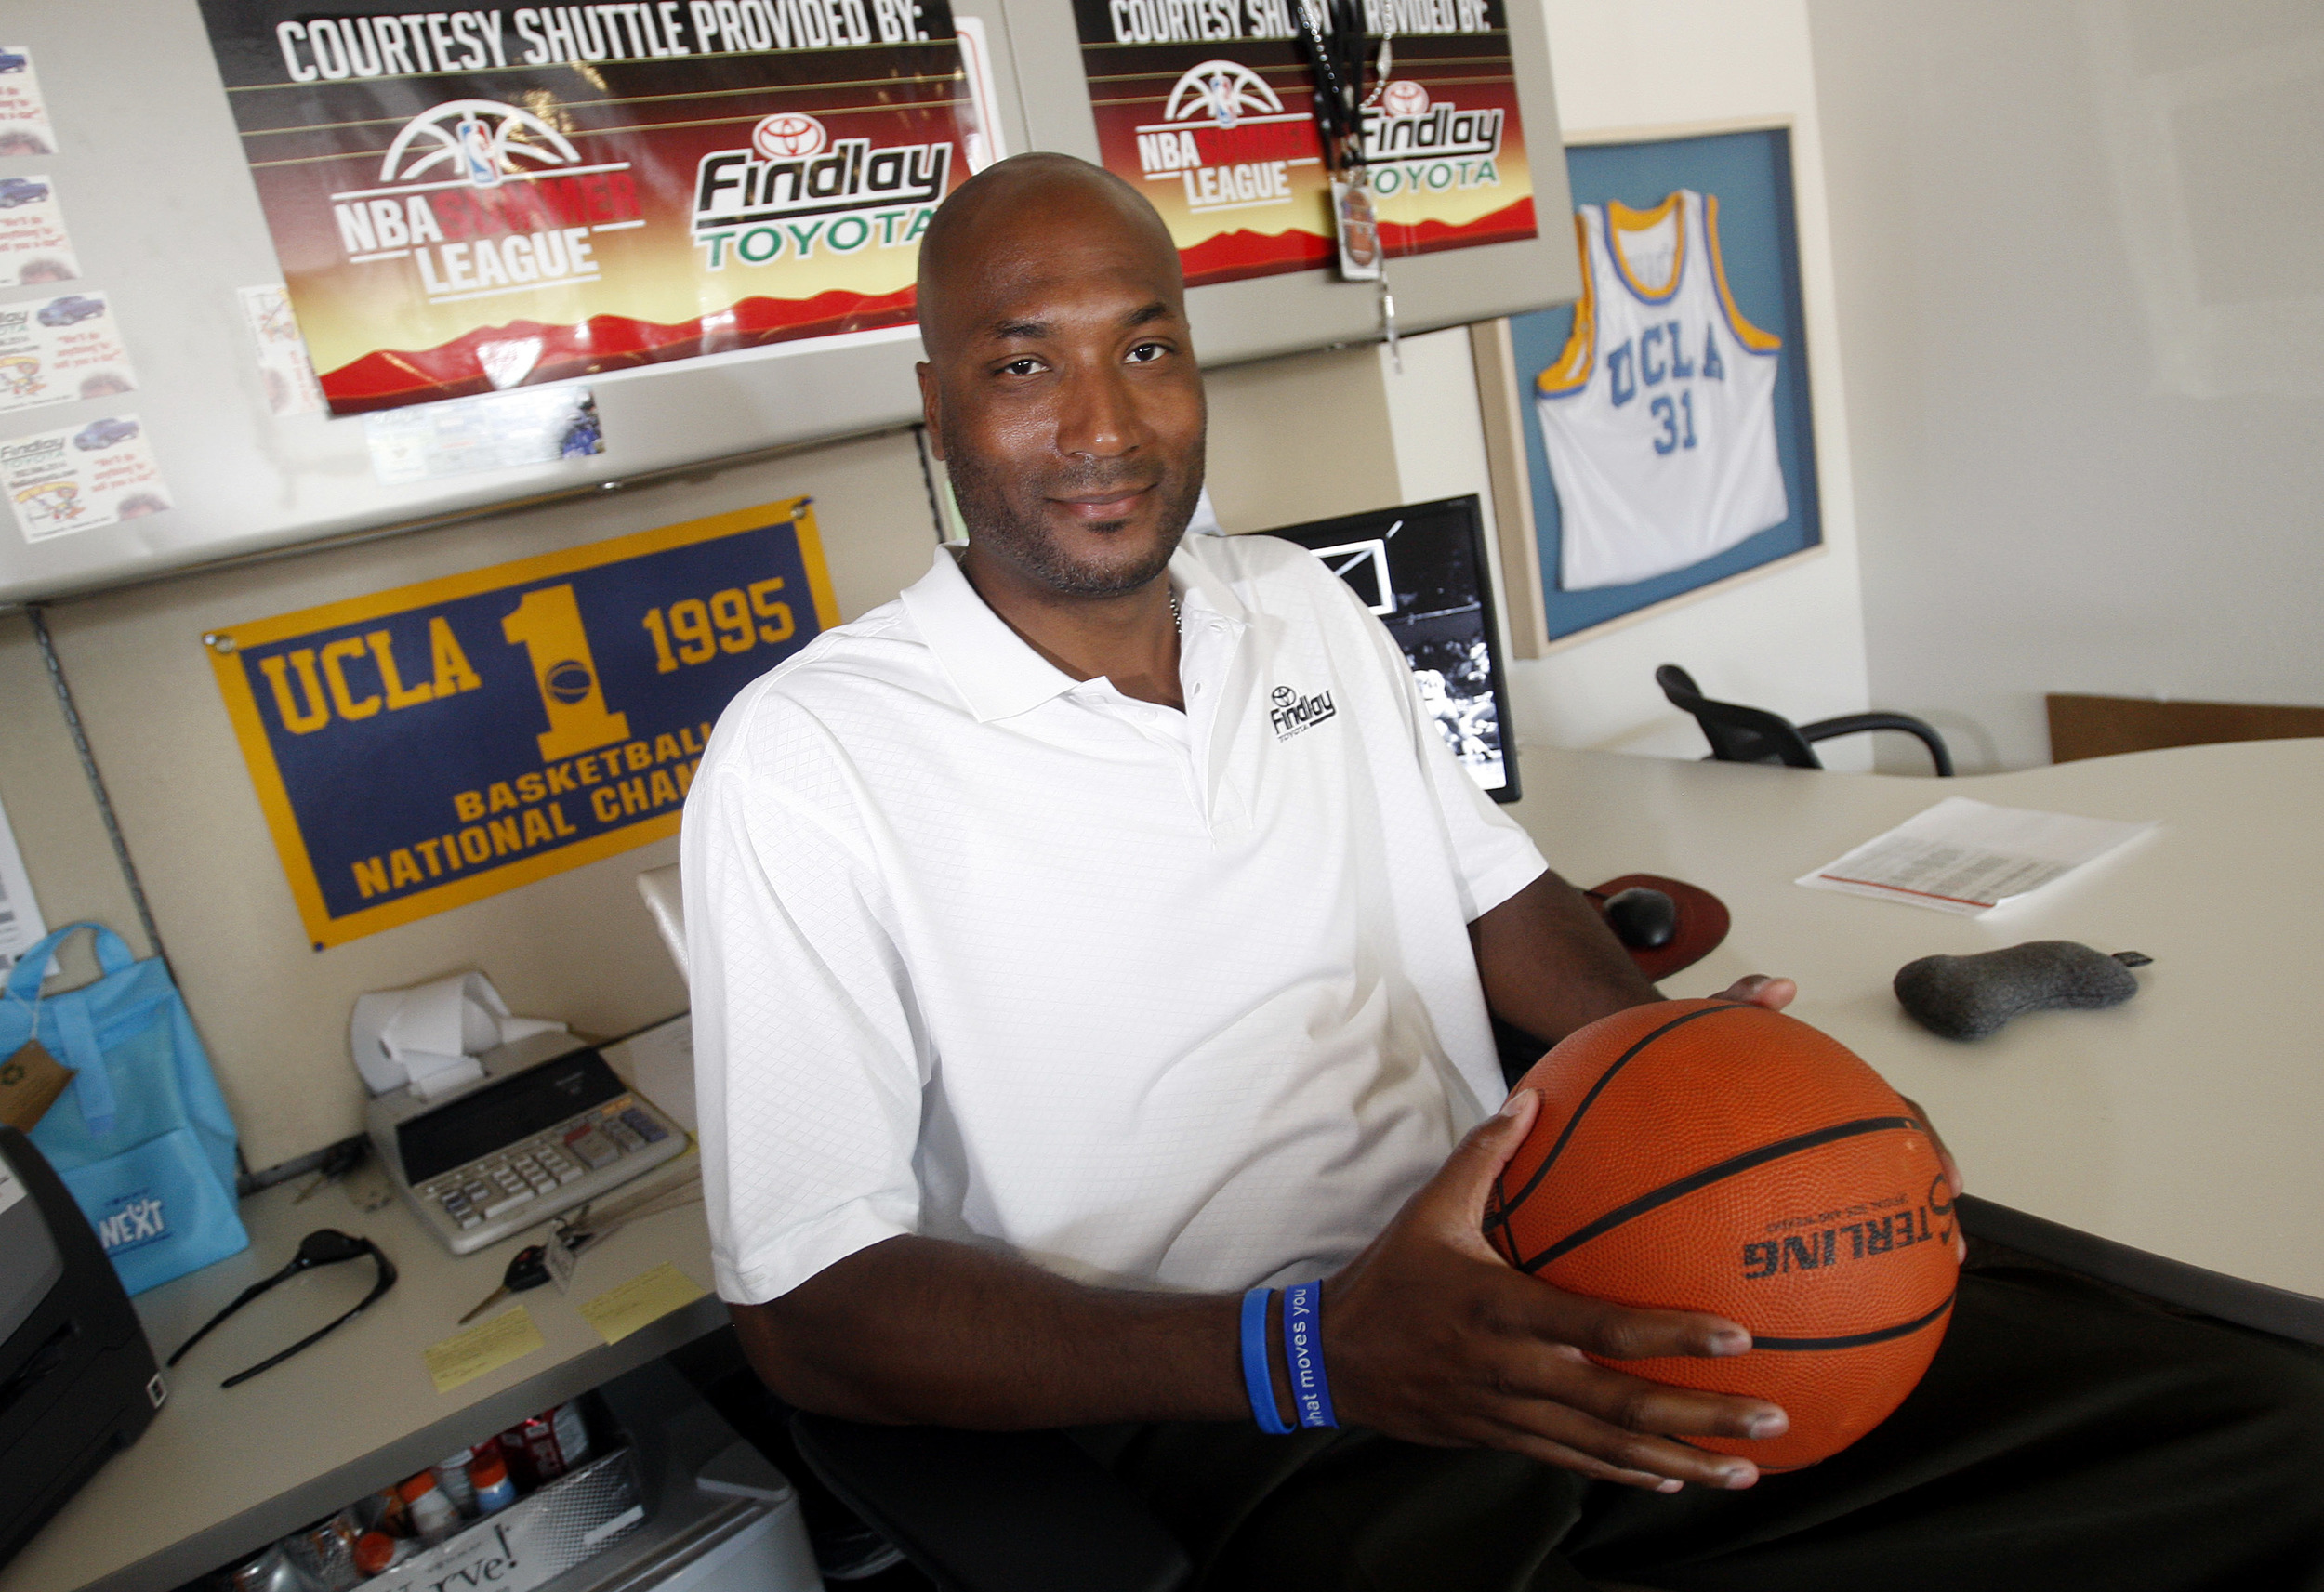 In this Sept. 18, 2010, file photo, former UCLA basketball player Ed O'Bannon Jr. sits in his office in Henderson, Nev. A federal appeals court agreed Wednesday, Sept. 30, 2015, that the NCAA's use of college athletes' names, images and likenesses in video games and TV broadcasts violated antitrust laws but struck down a plan to allow schools to pay players up to $5,000. The decision came in a lawsuit filed by O'Bannon and 19 others. (Isaac Brekken, File/AP)